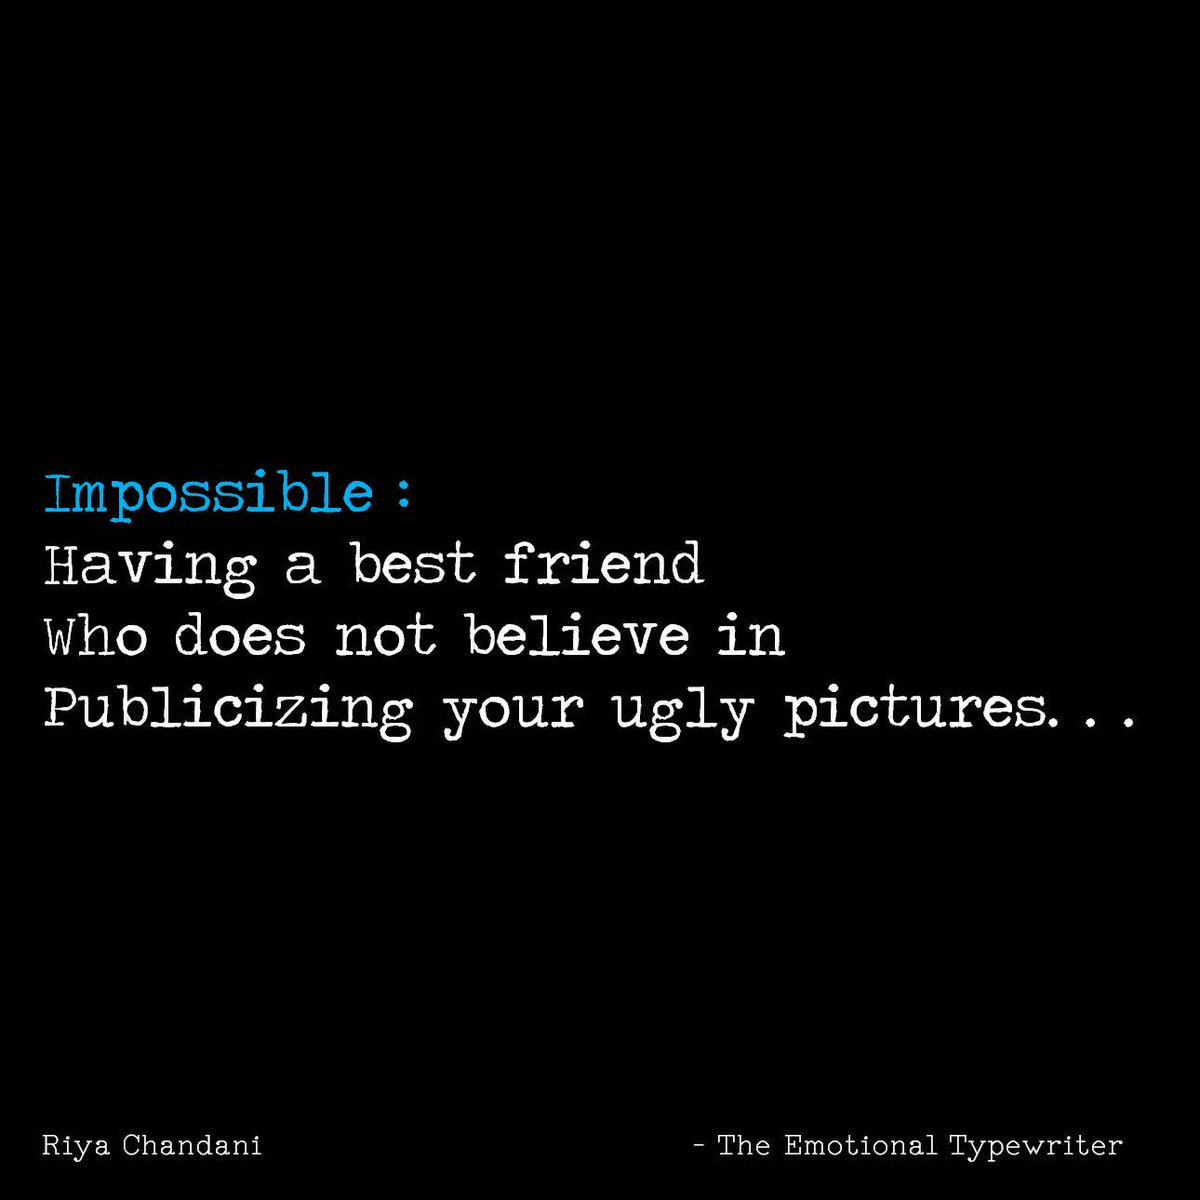 #impossible #bestfriend #not #trying #to #publicise #your #ugly #pictures #funny #friends #TheEmotionalTypewriter #TET